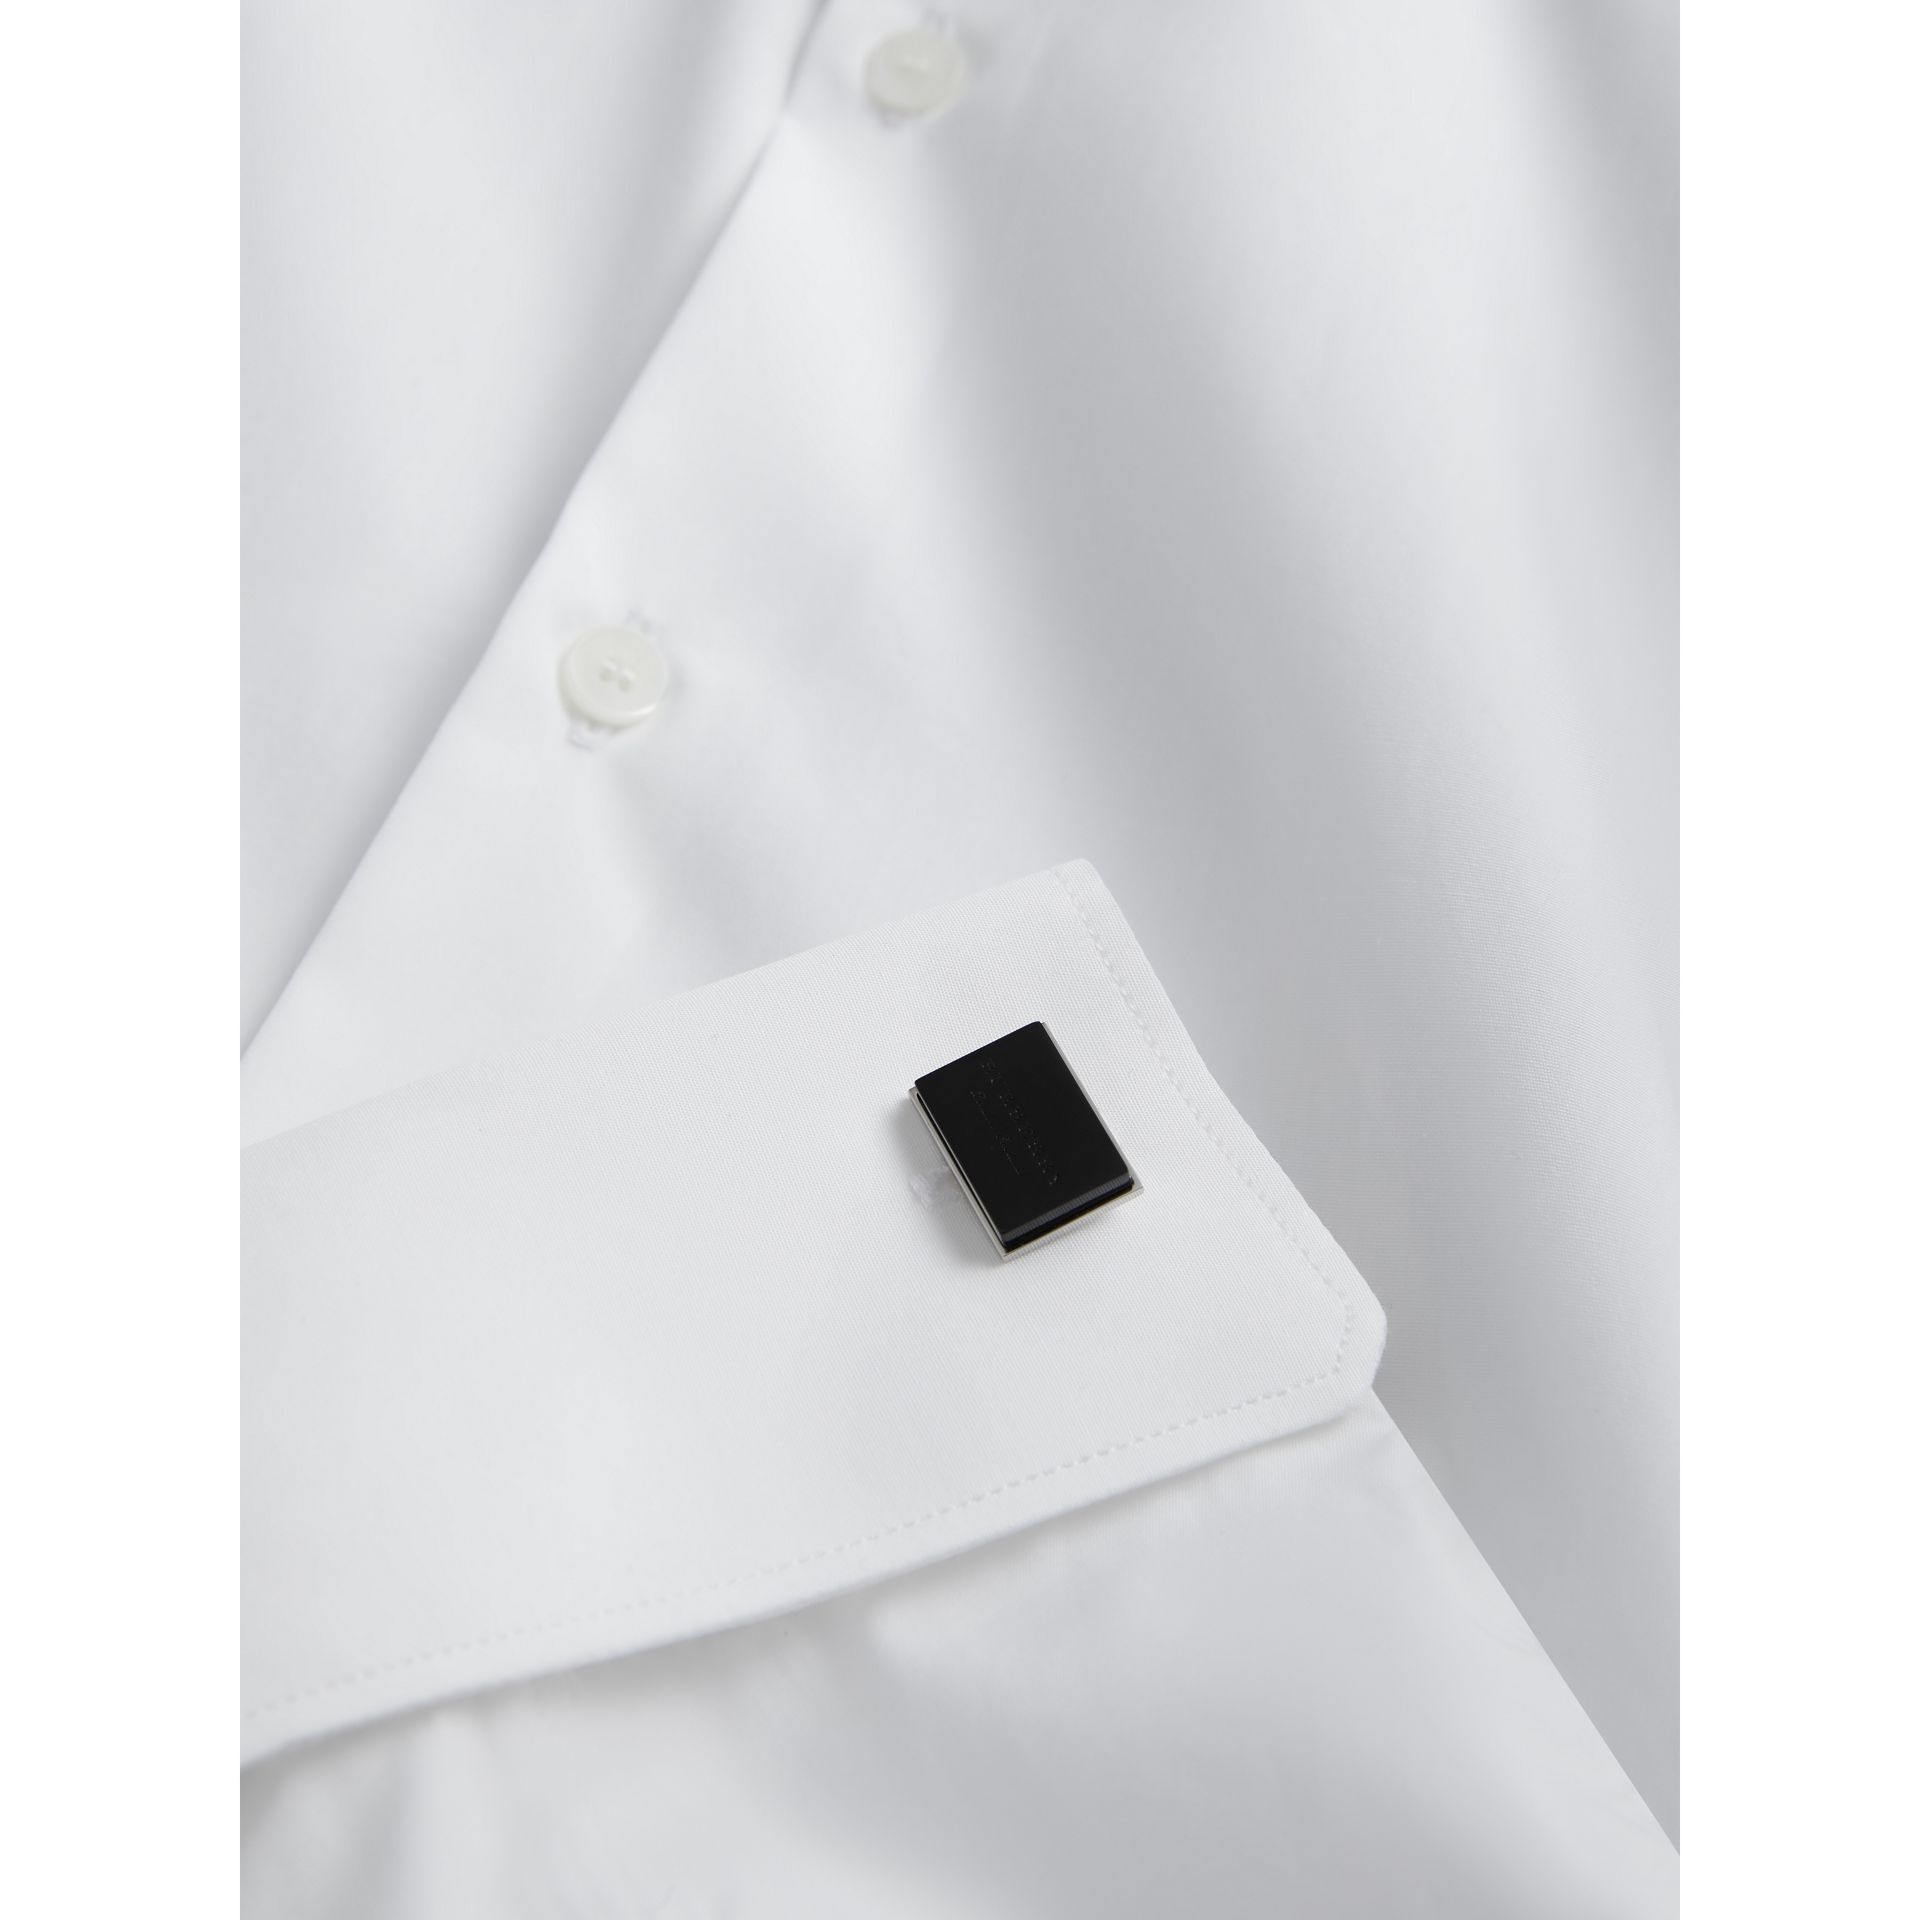 Engraved Enamel Cufflinks in Black - Men | Burberry - gallery image 3